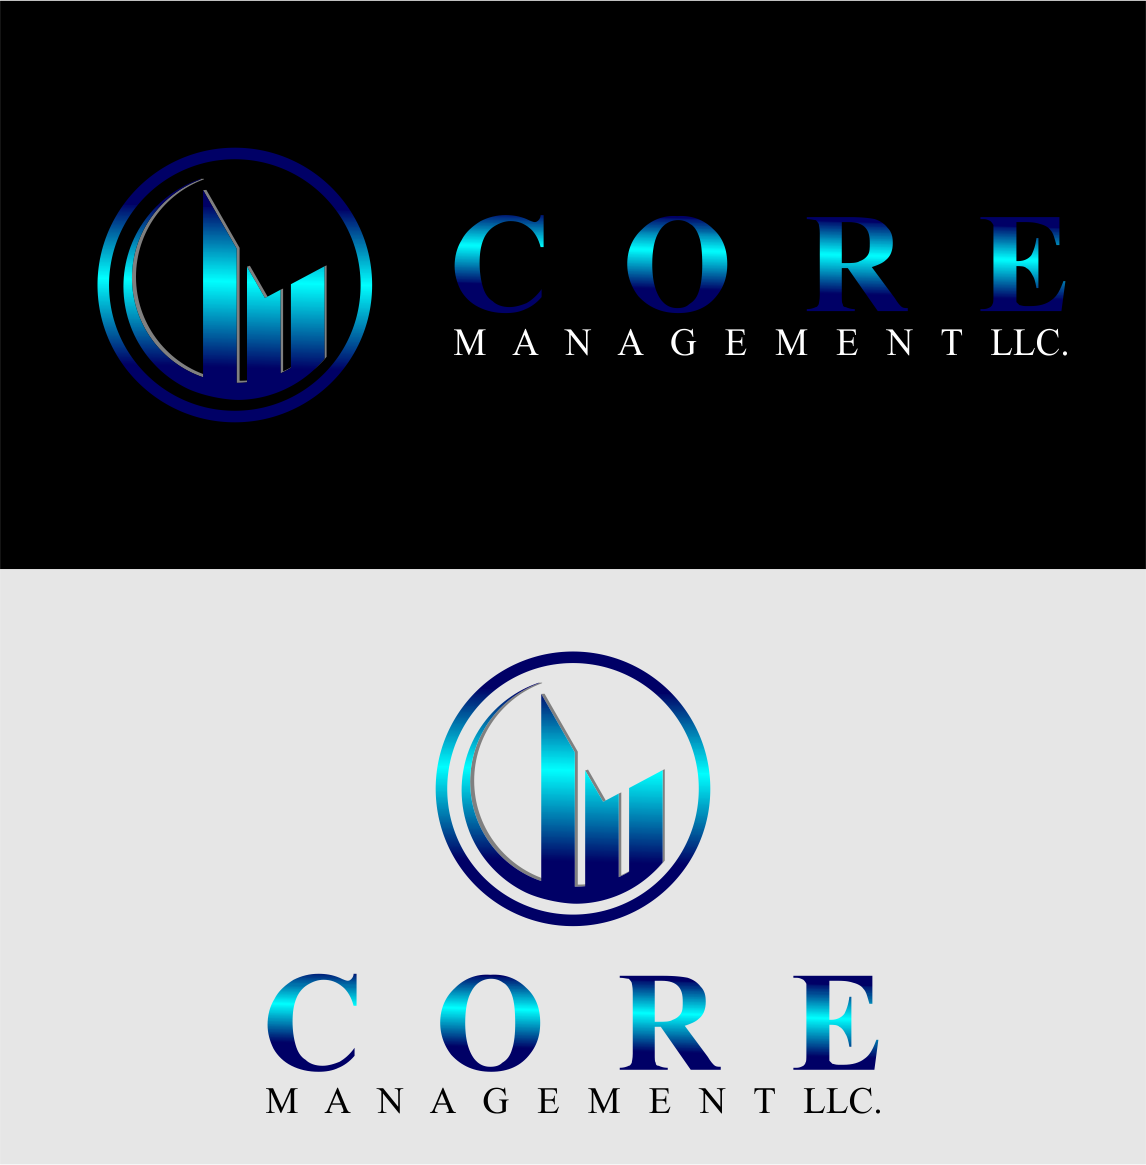 Logo Design by Agus Martoyo - Entry No. 169 in the Logo Design Contest Creative Logo Design for CORE Management, LLC.